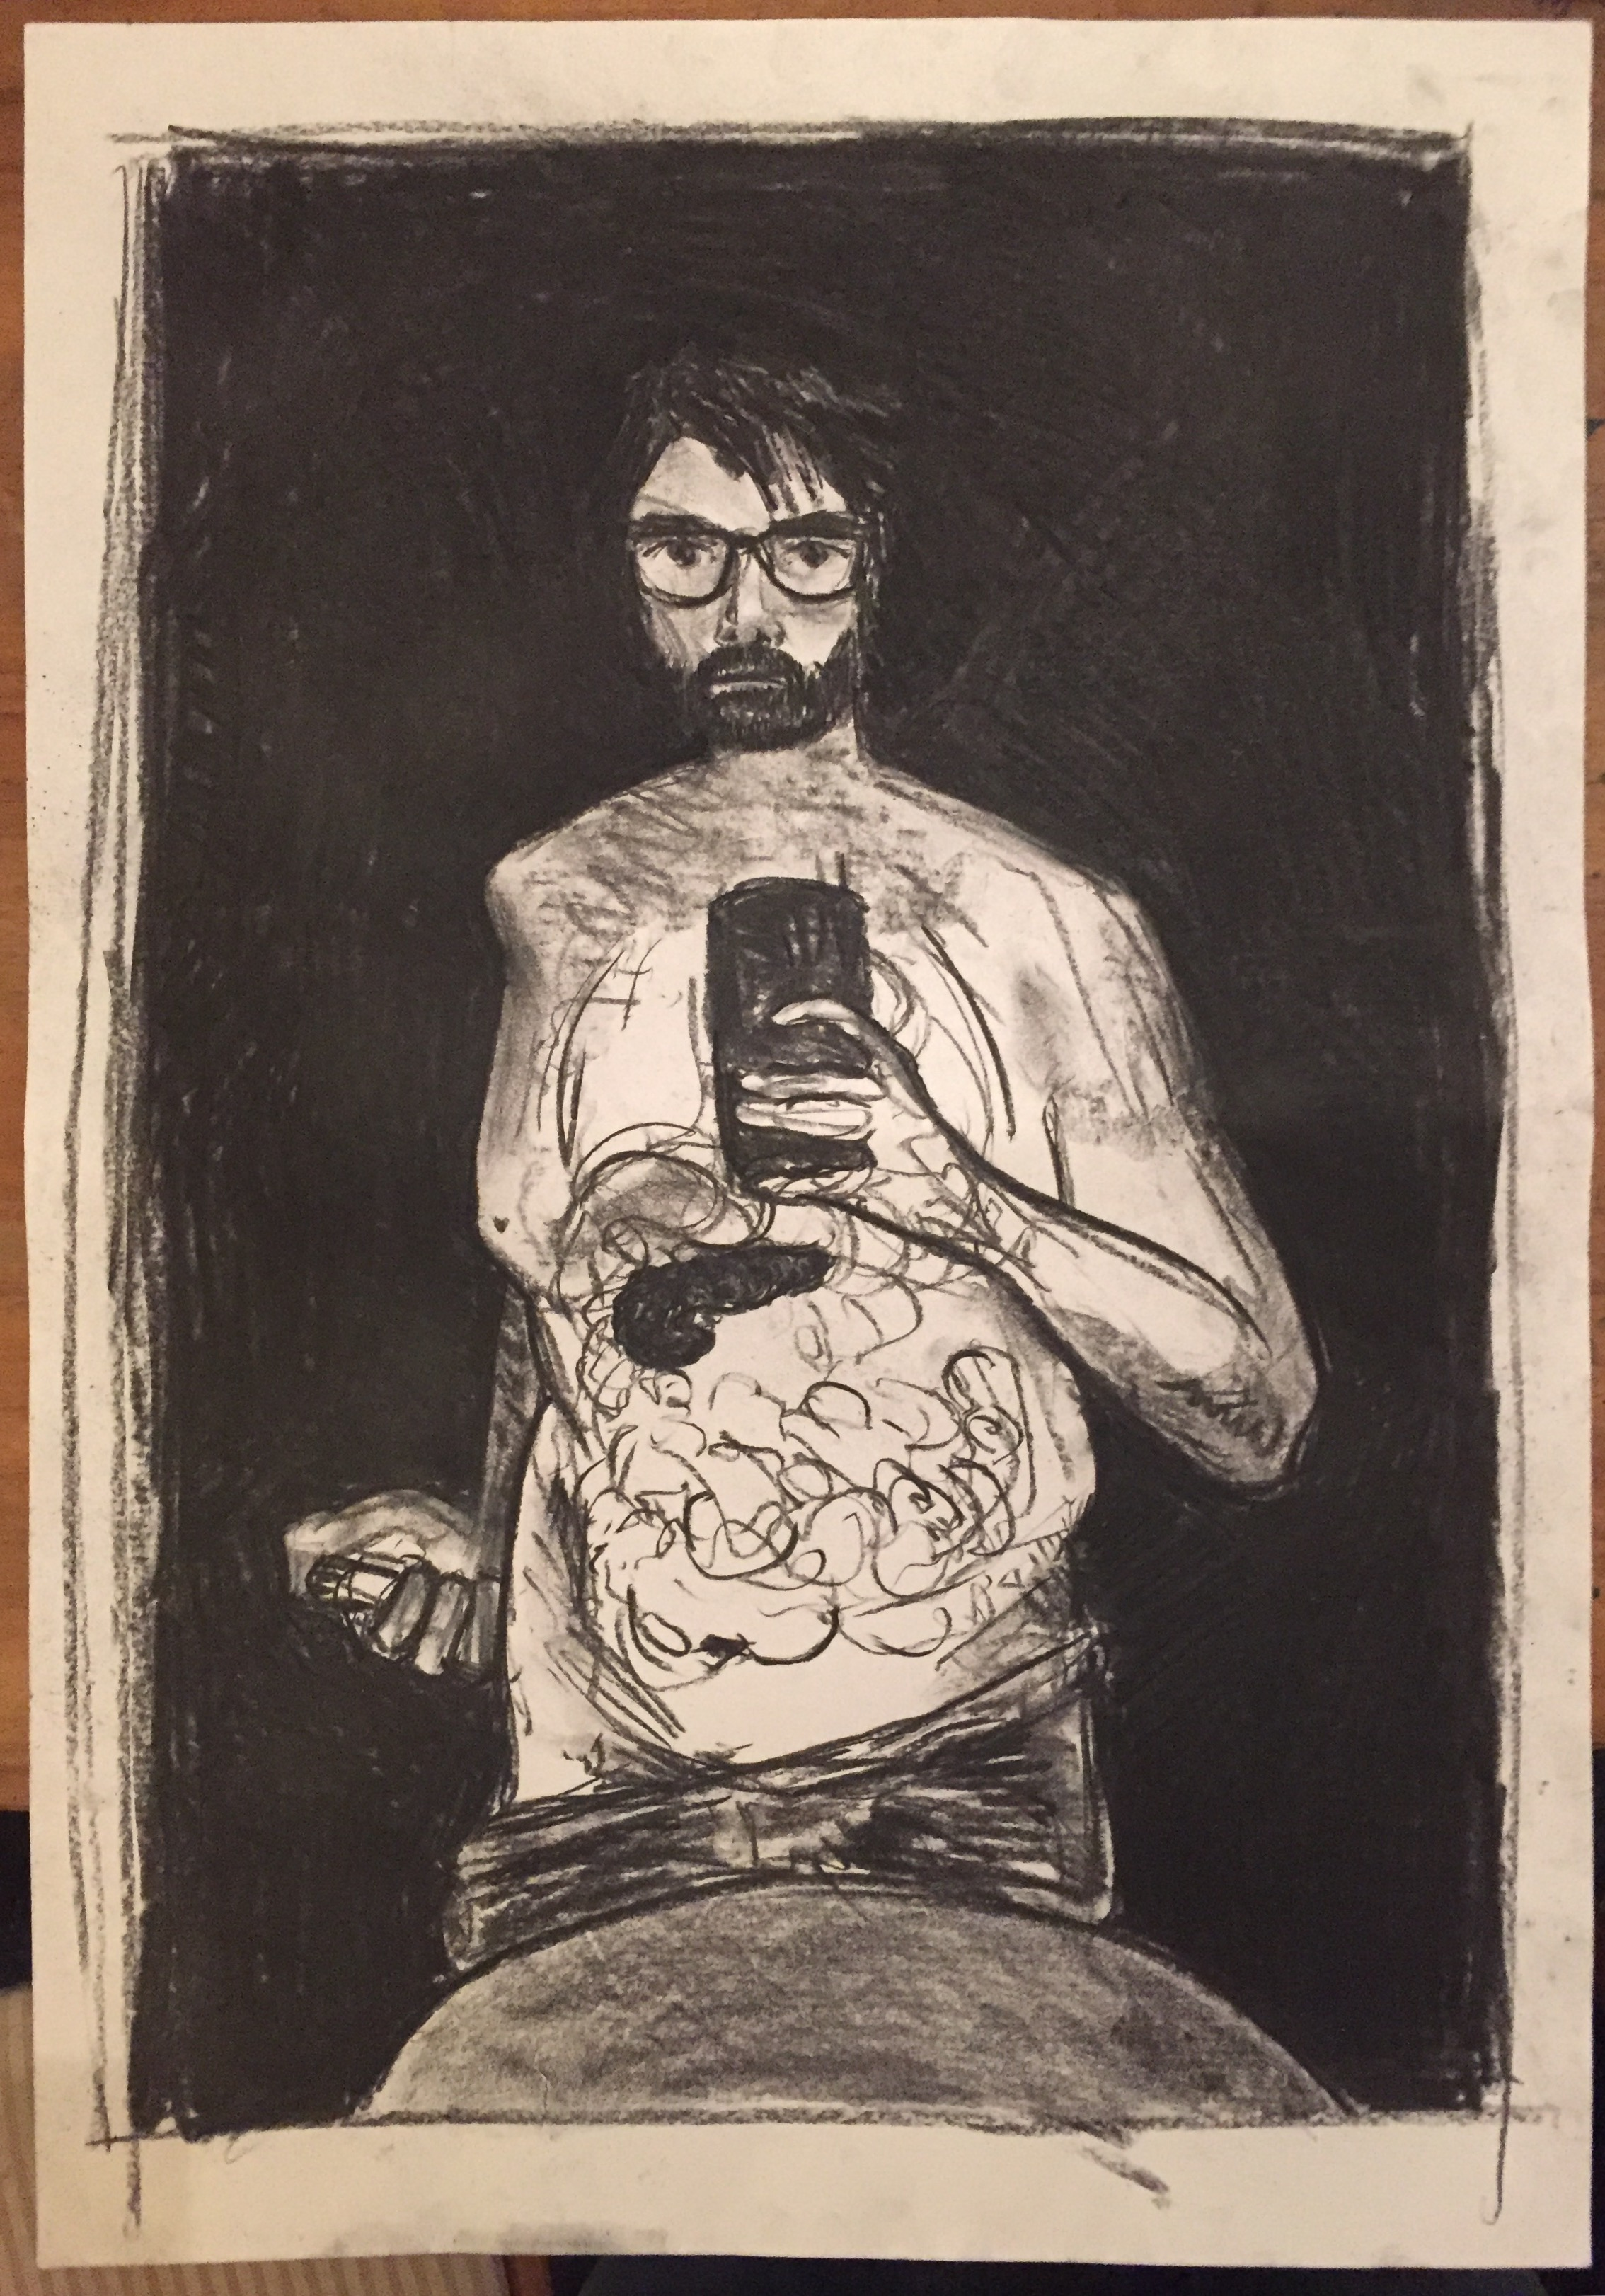 Pickering, A. 2017: Selfie with injection pen and pancreas . Charcoal on A2 paper.